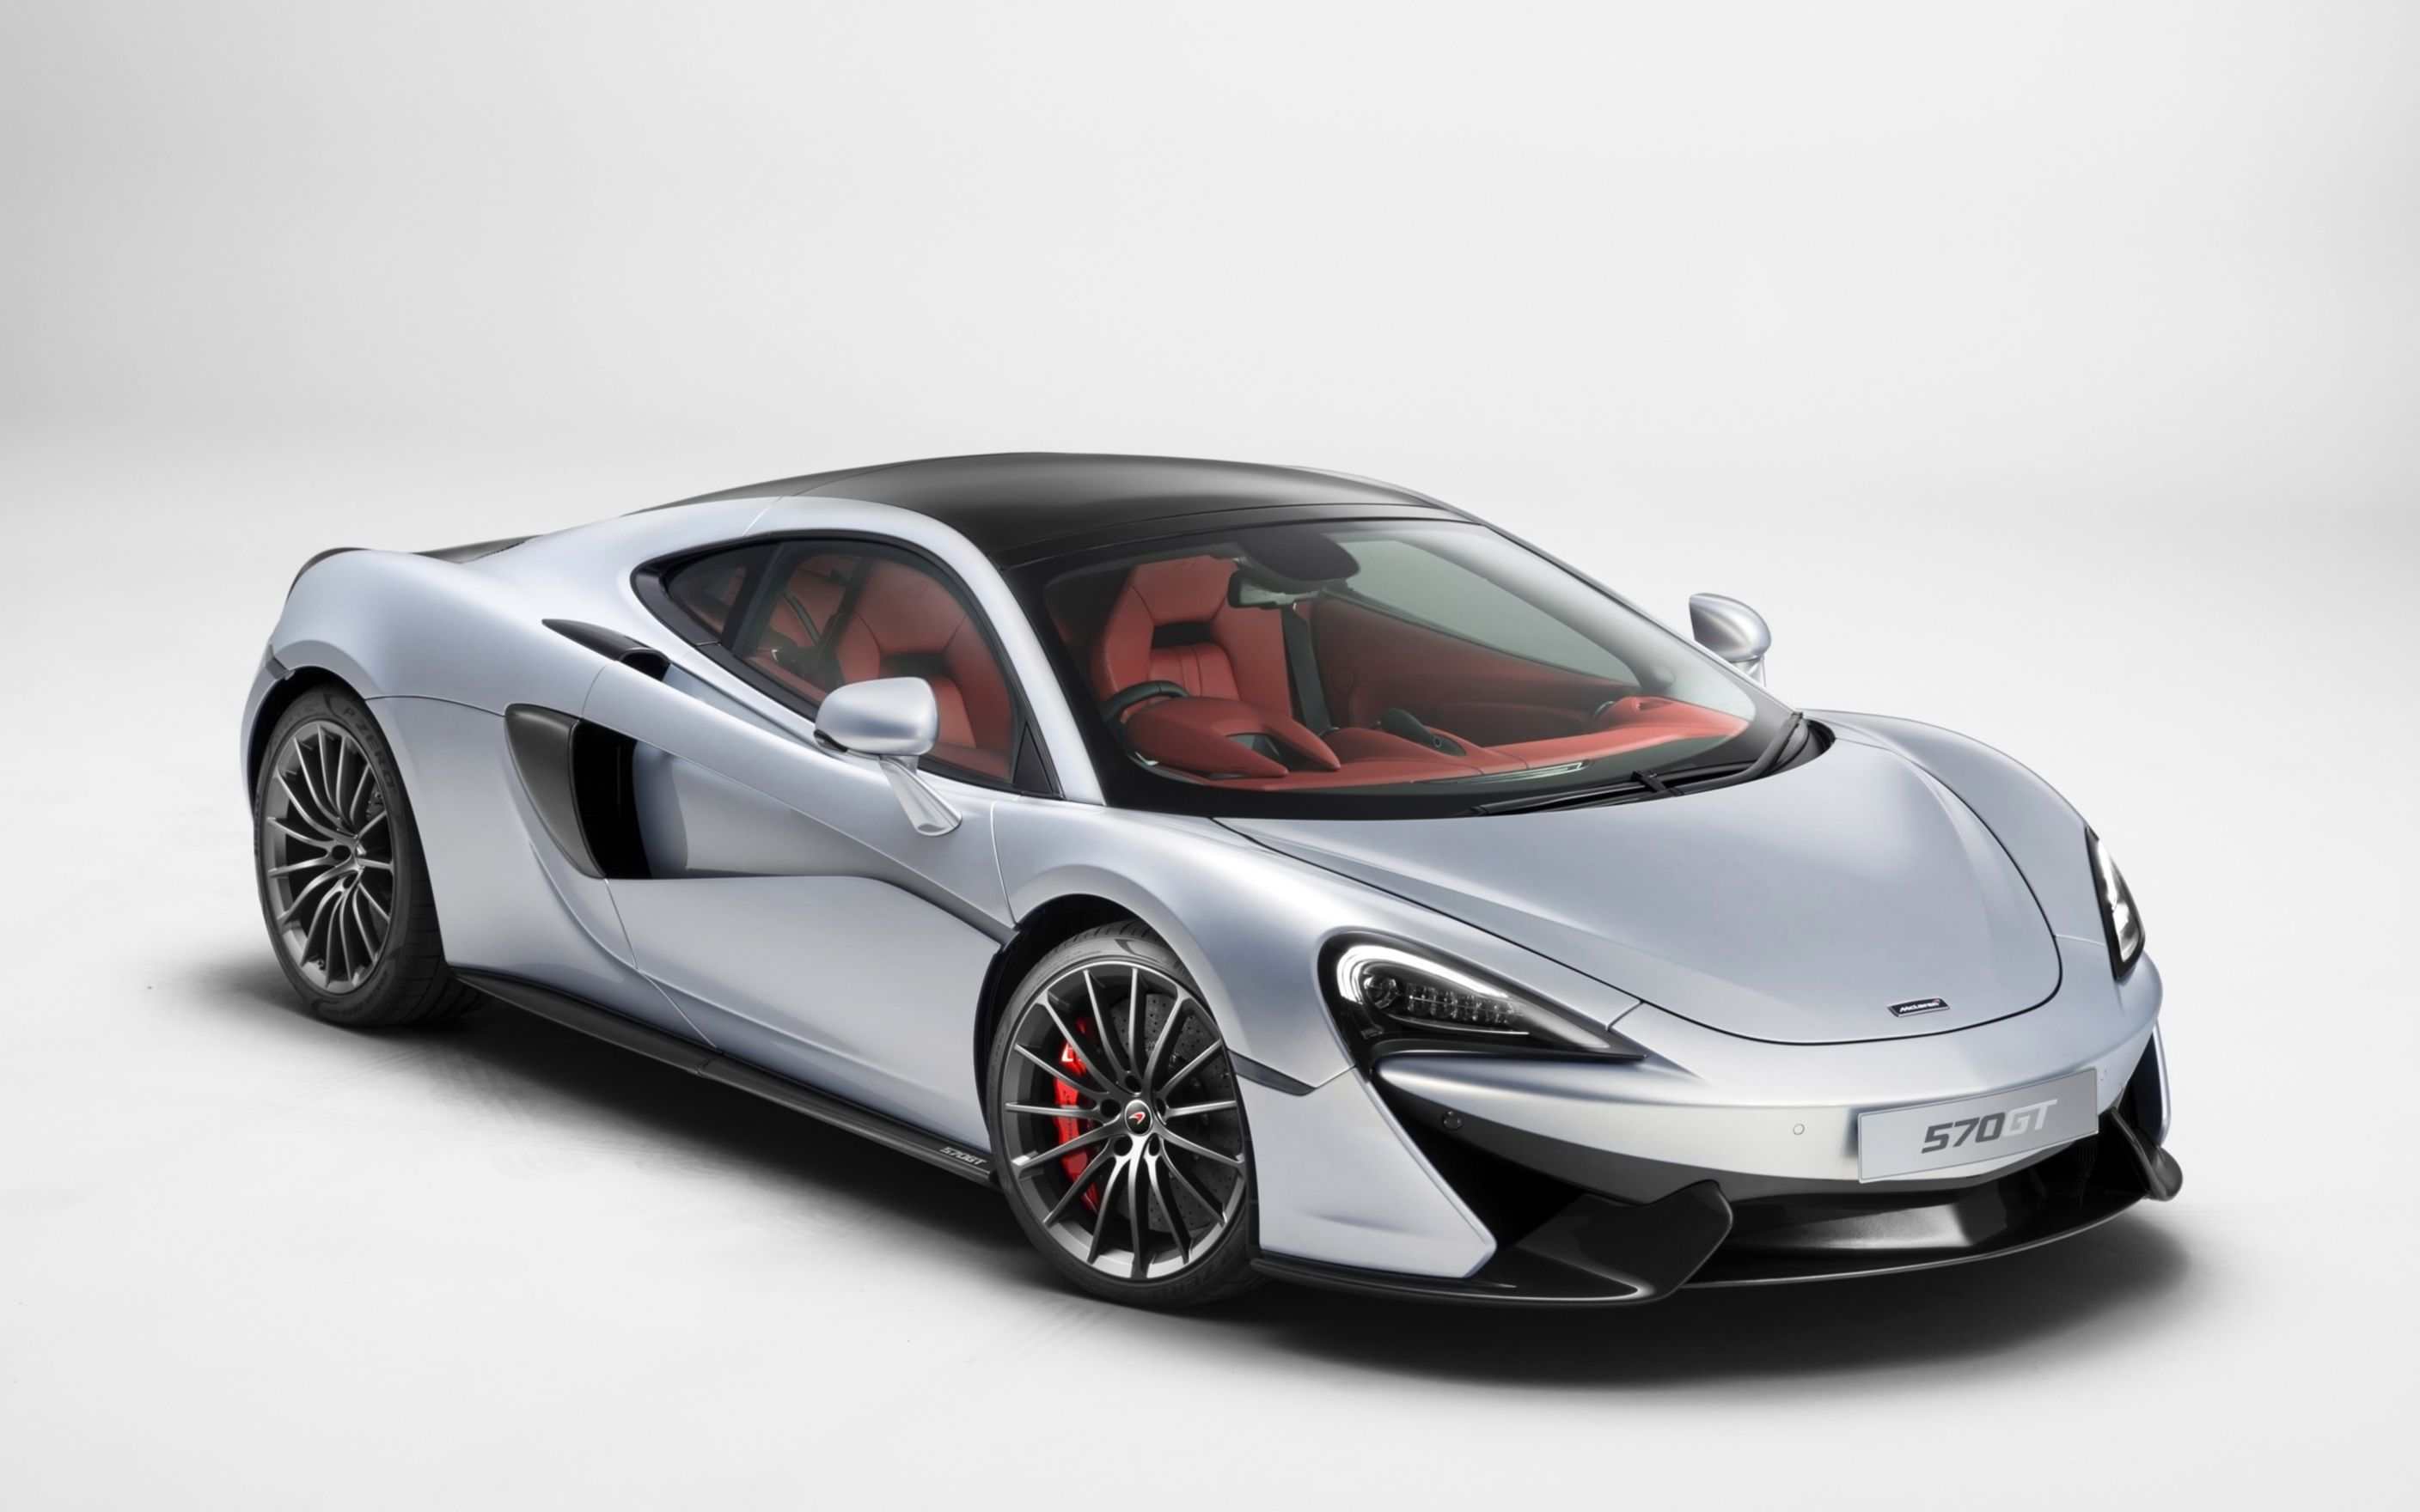 Download free HD 2016 Mclaren 570GT Wide Wallpaper, image